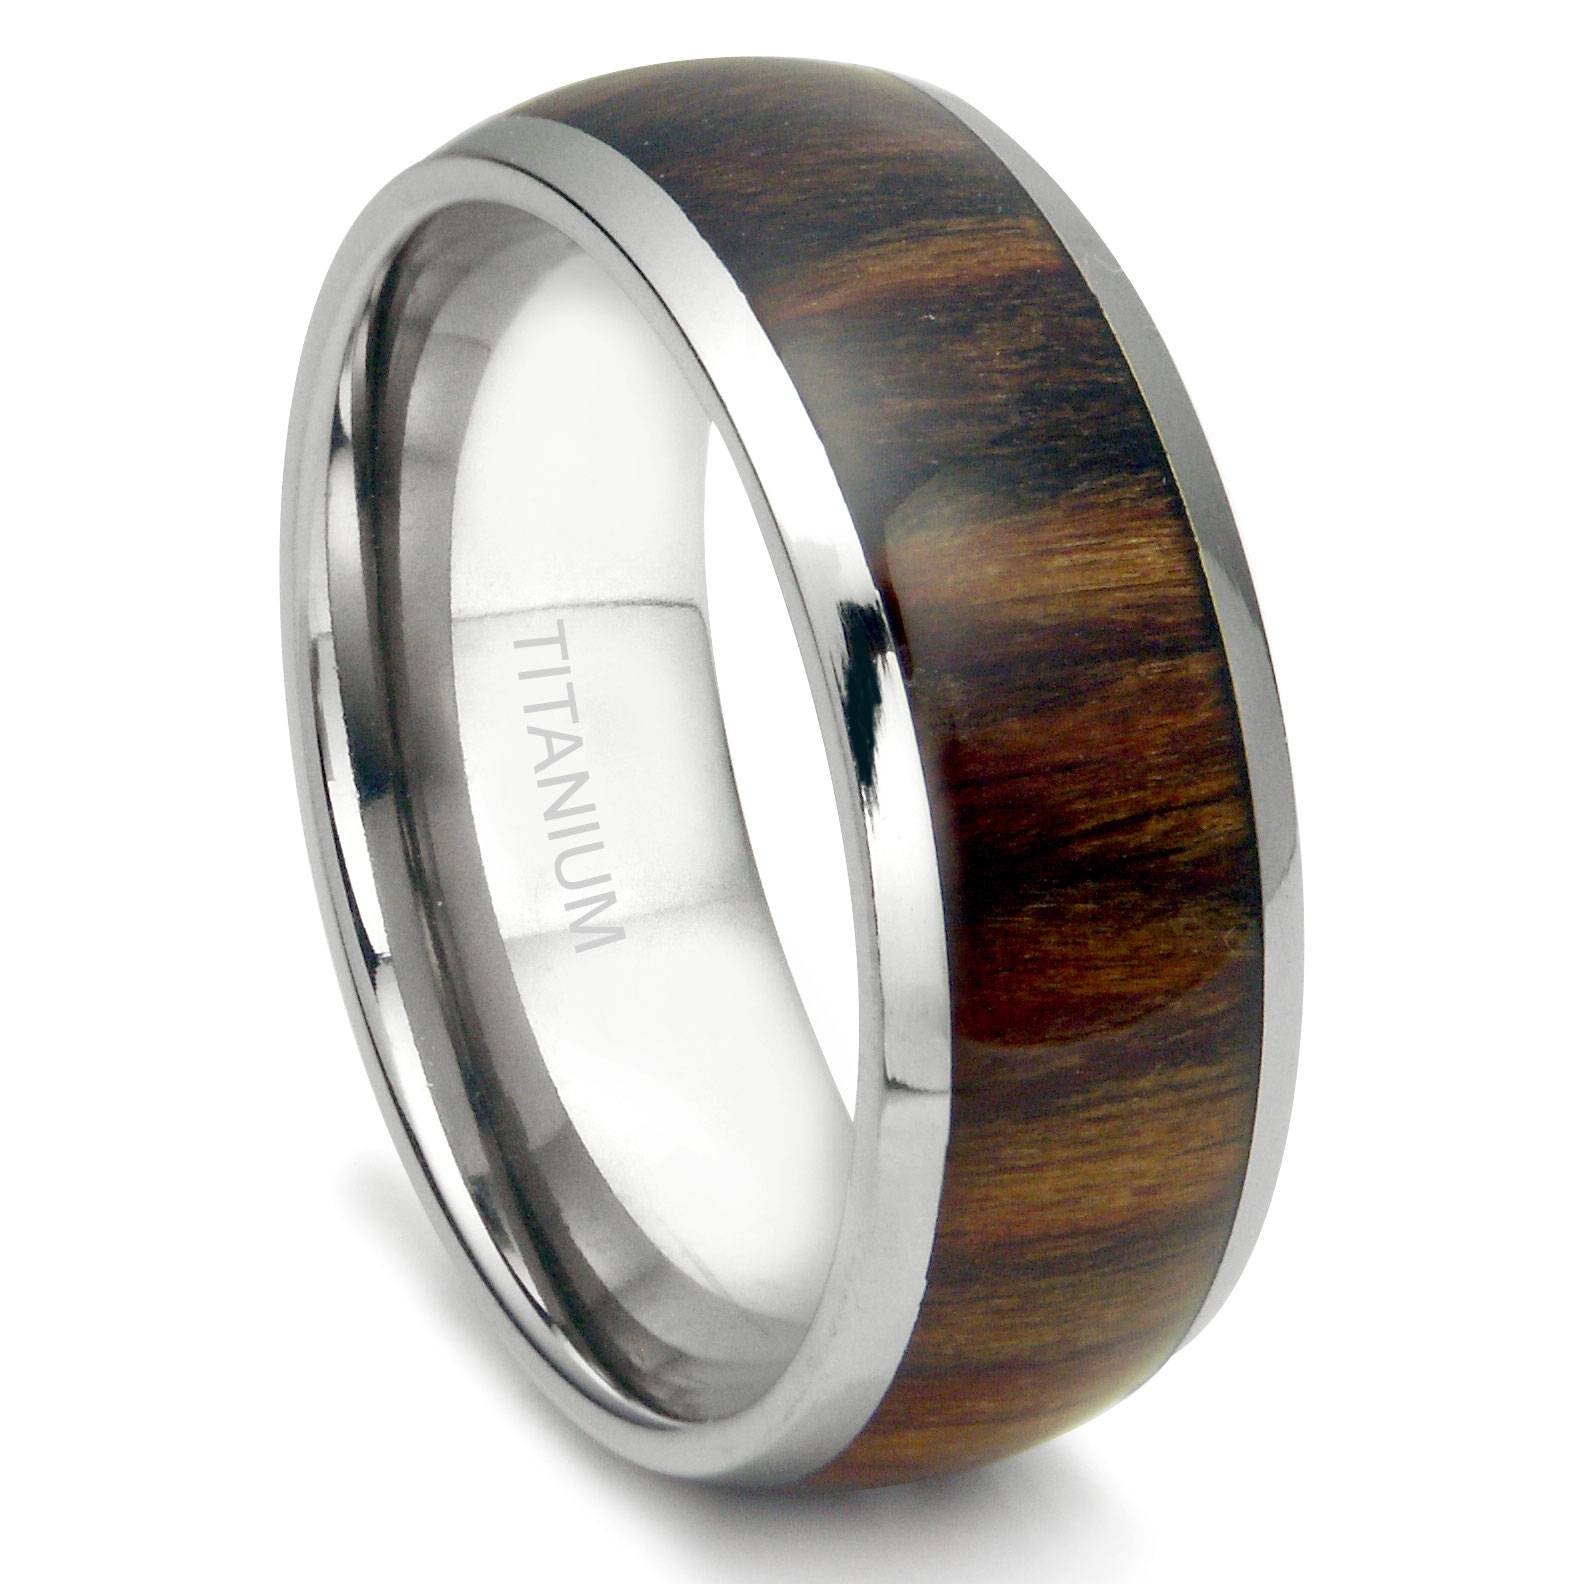 Titanium 8mm Domed Santos Rosewood Inlay Wedding Band Ring Pertaining To Titanium Mens Wedding Bands (View 7 of 15)